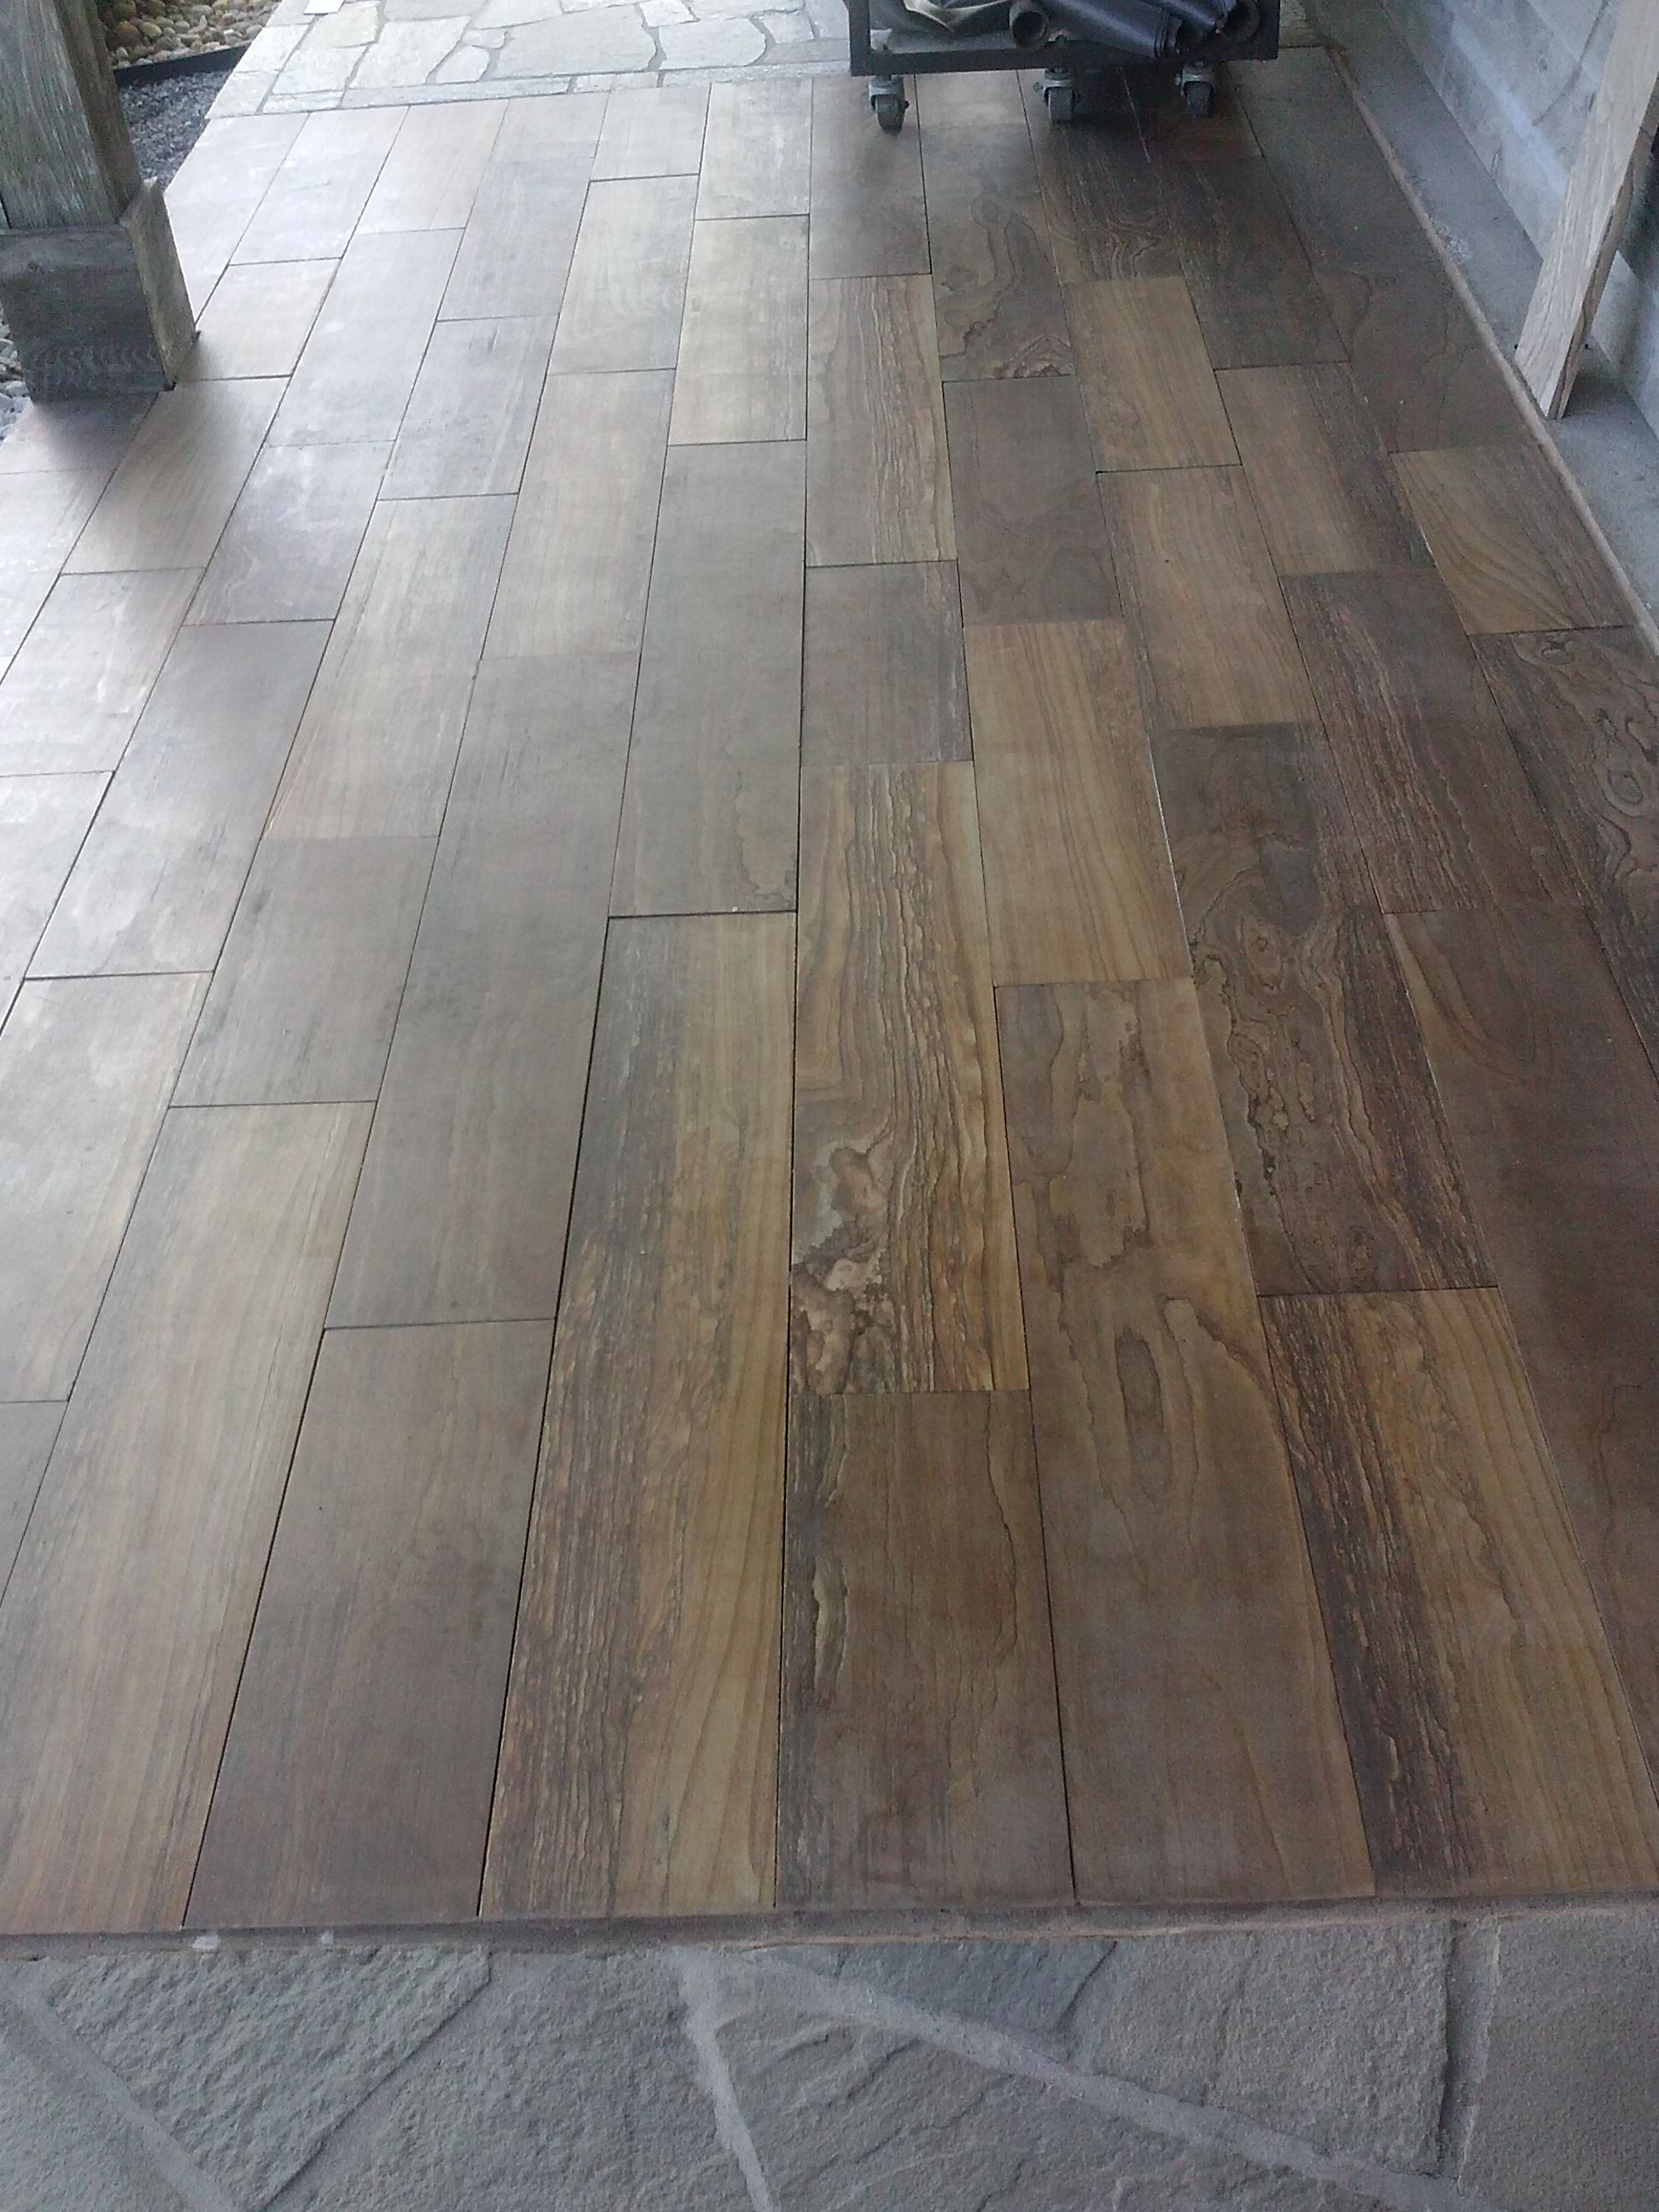 Natural Stone Called Oak Canyon Plank Looks Like Wood Flooring Used Outside And Inside The Home